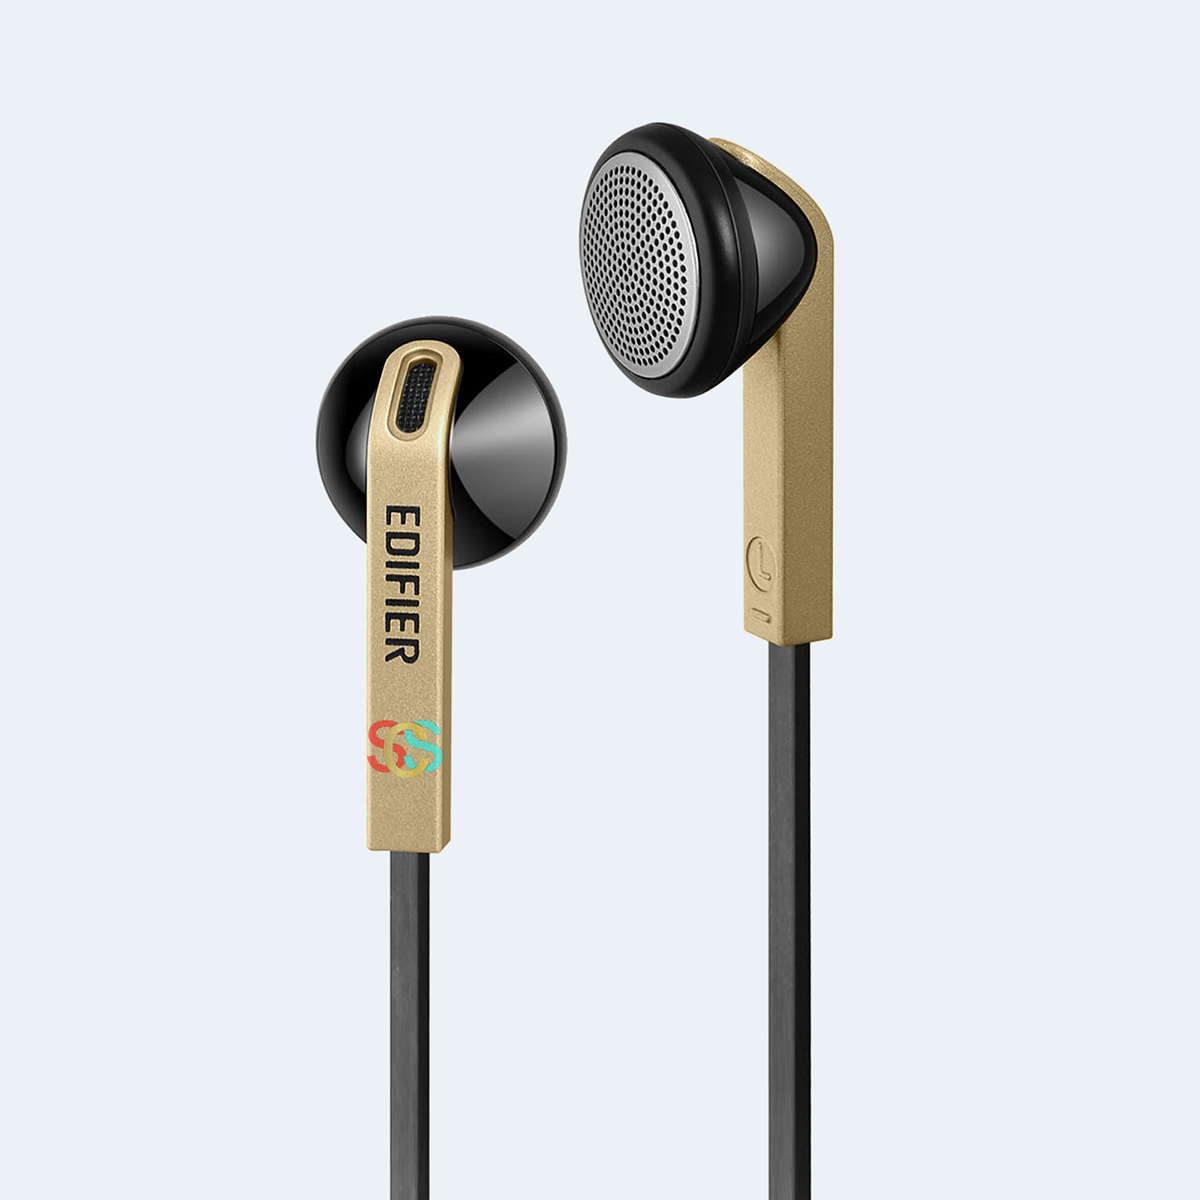 Edifier H190 Hi-Fi Sound Comfortable Fit Wired Black Gold Earpho